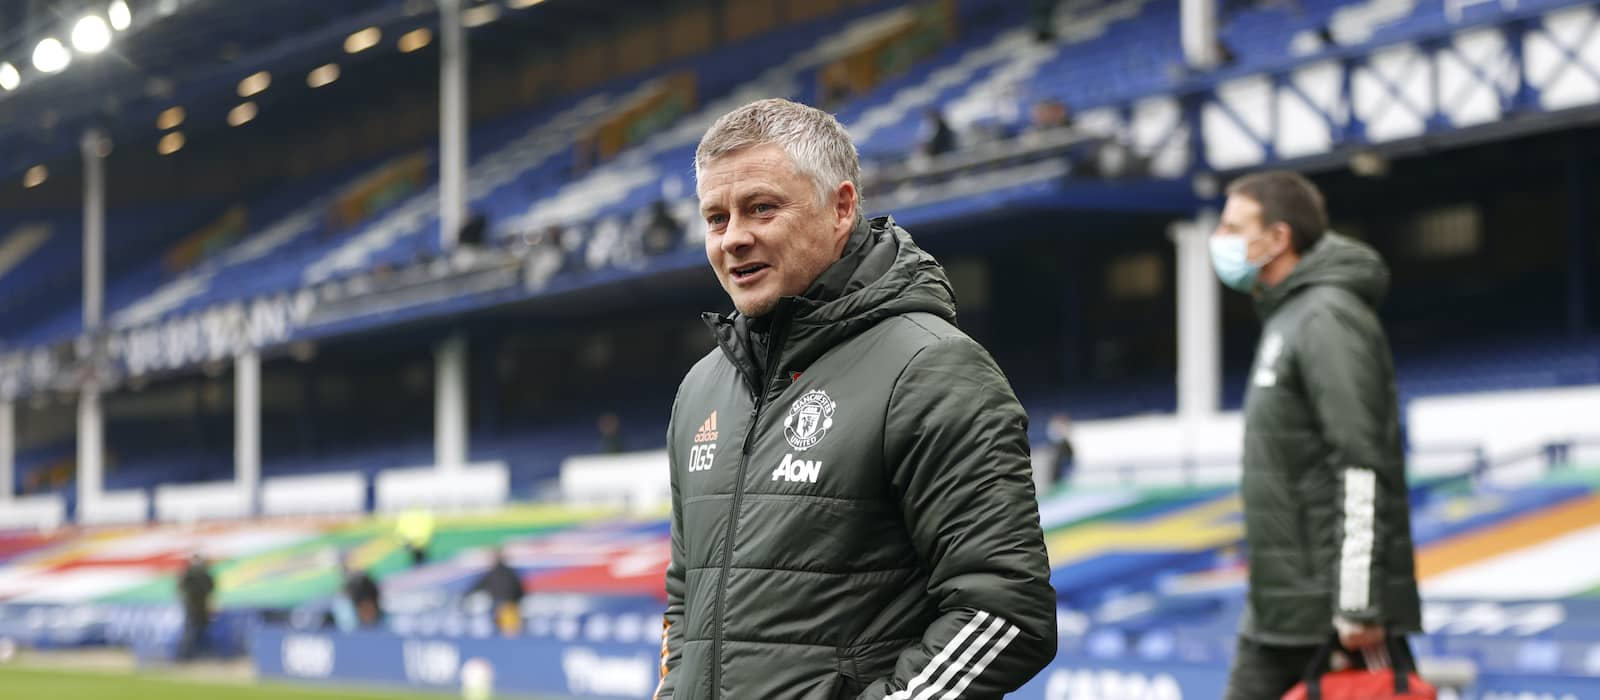 Mentality or coaching?: Ole Gunnar Solskjaer's most difficult problem at Manchester United